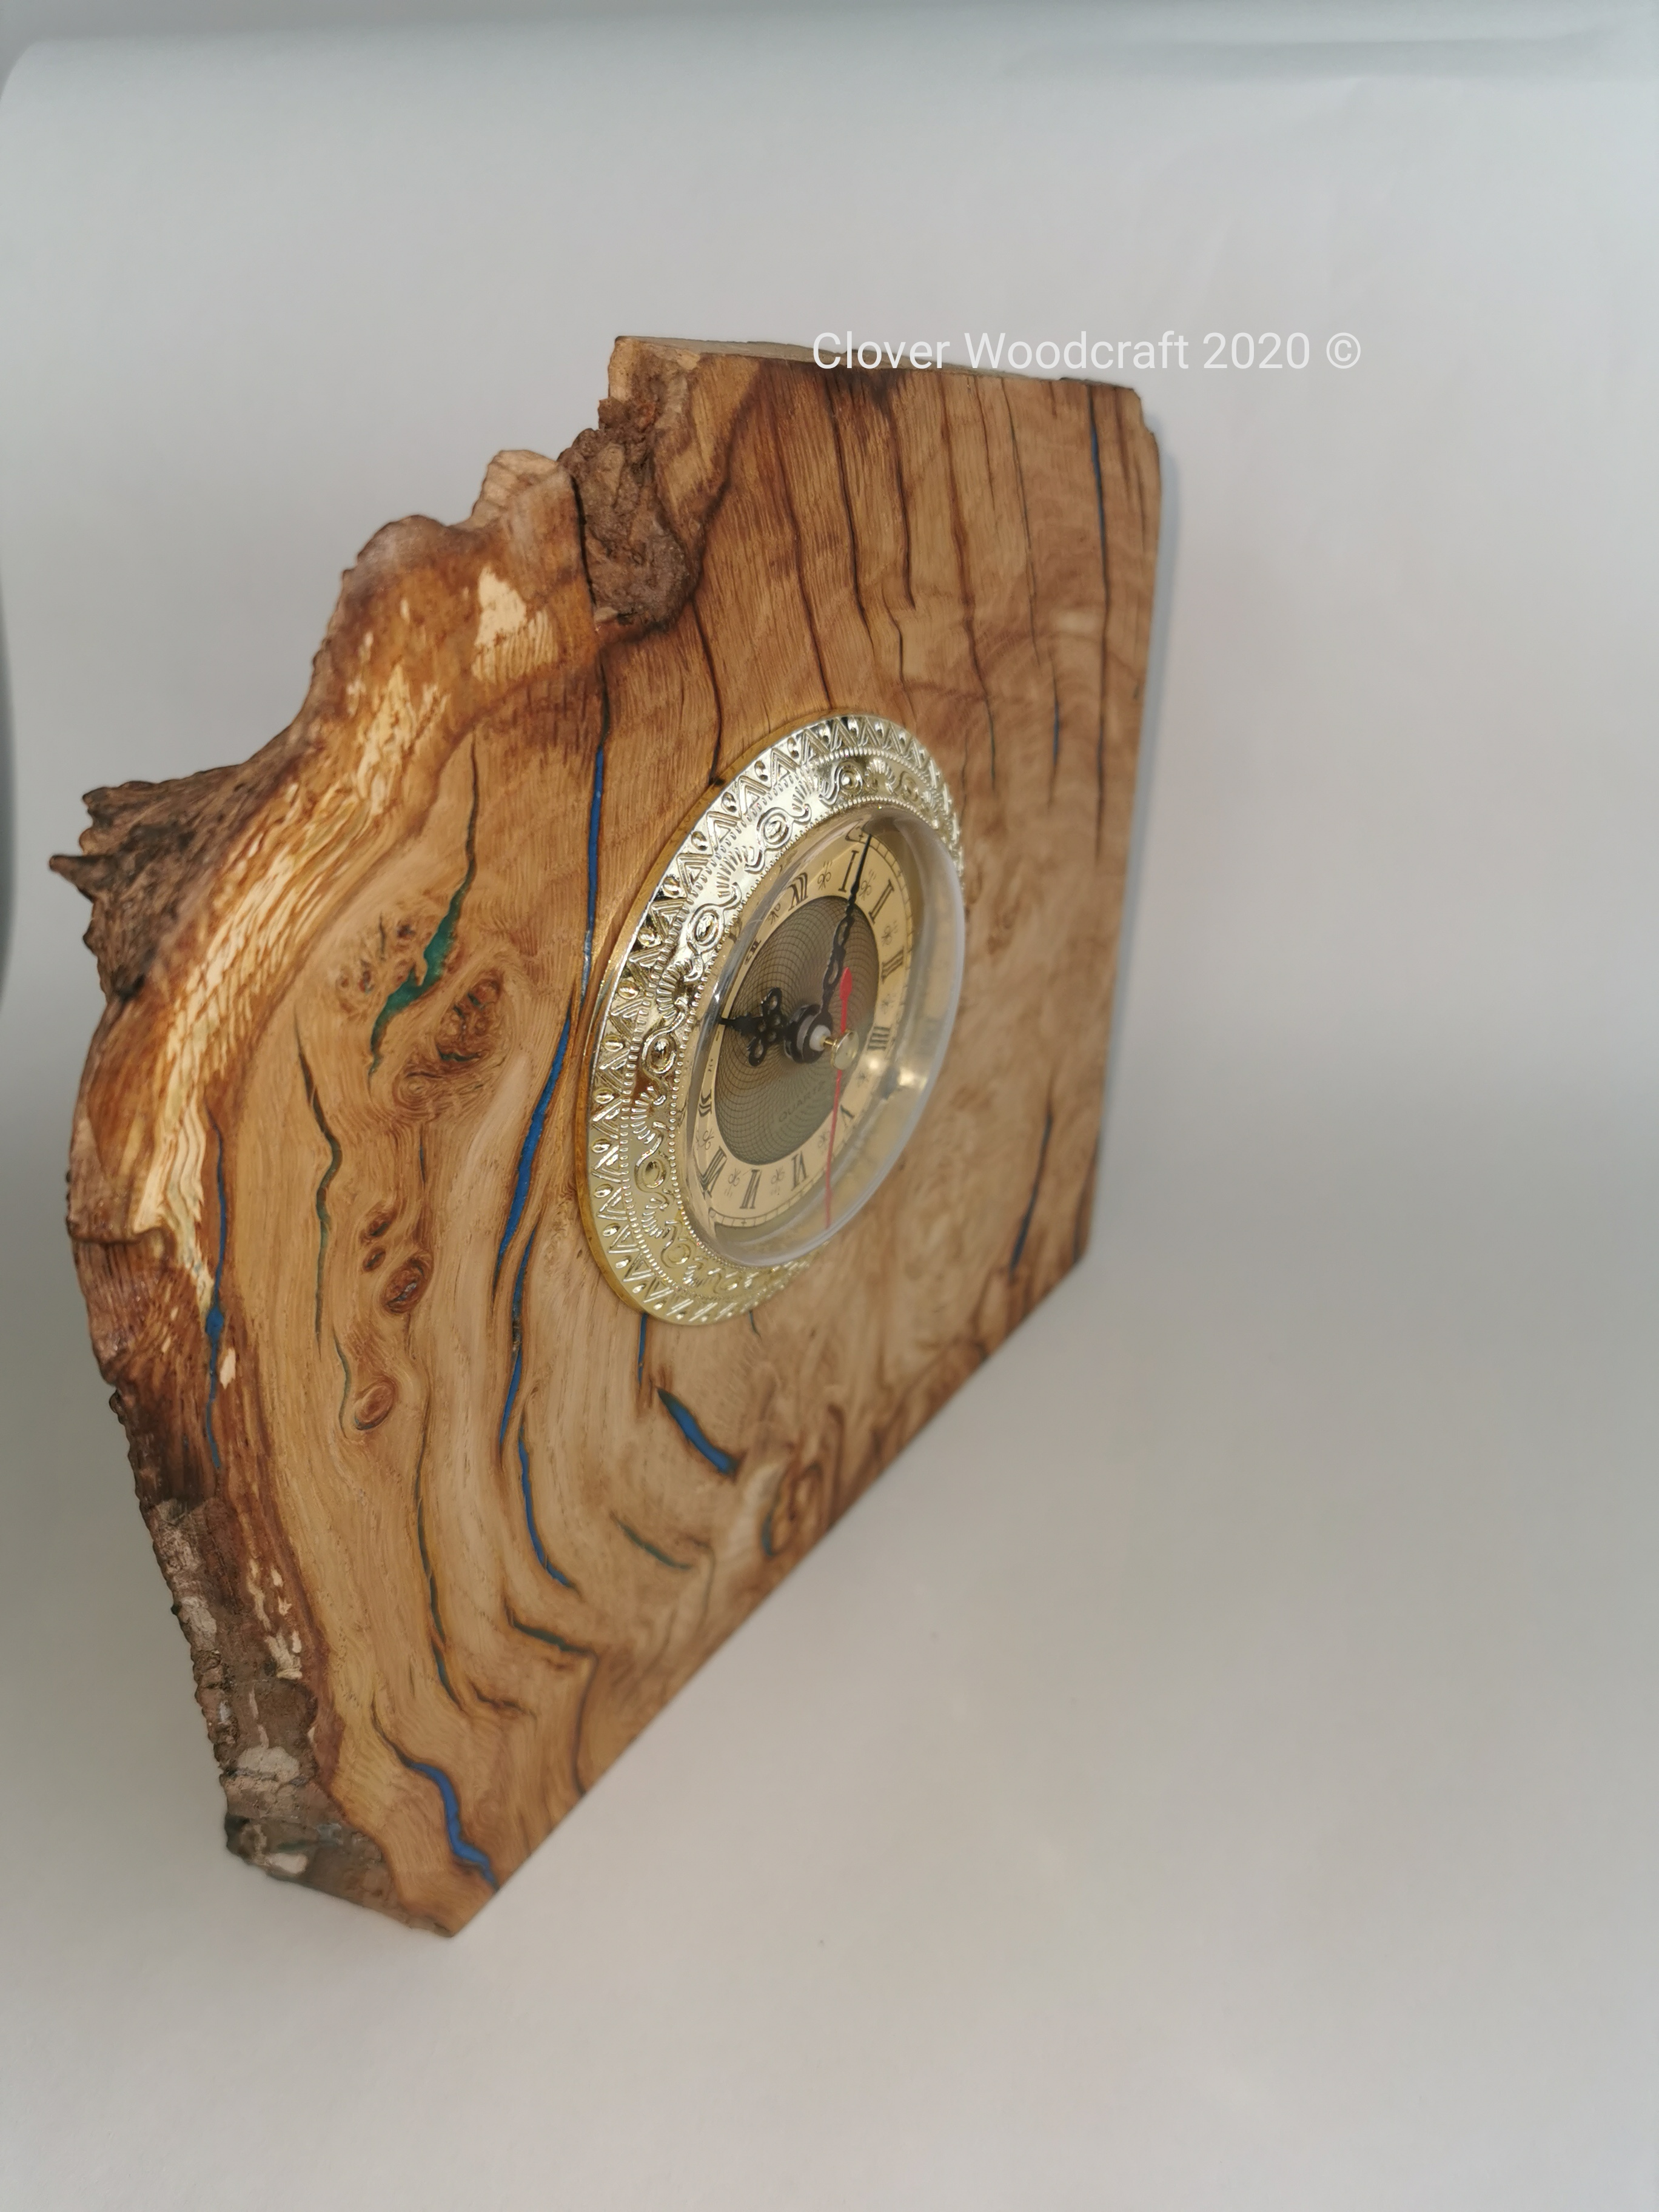 Irish Burl Oak Mantel Clock